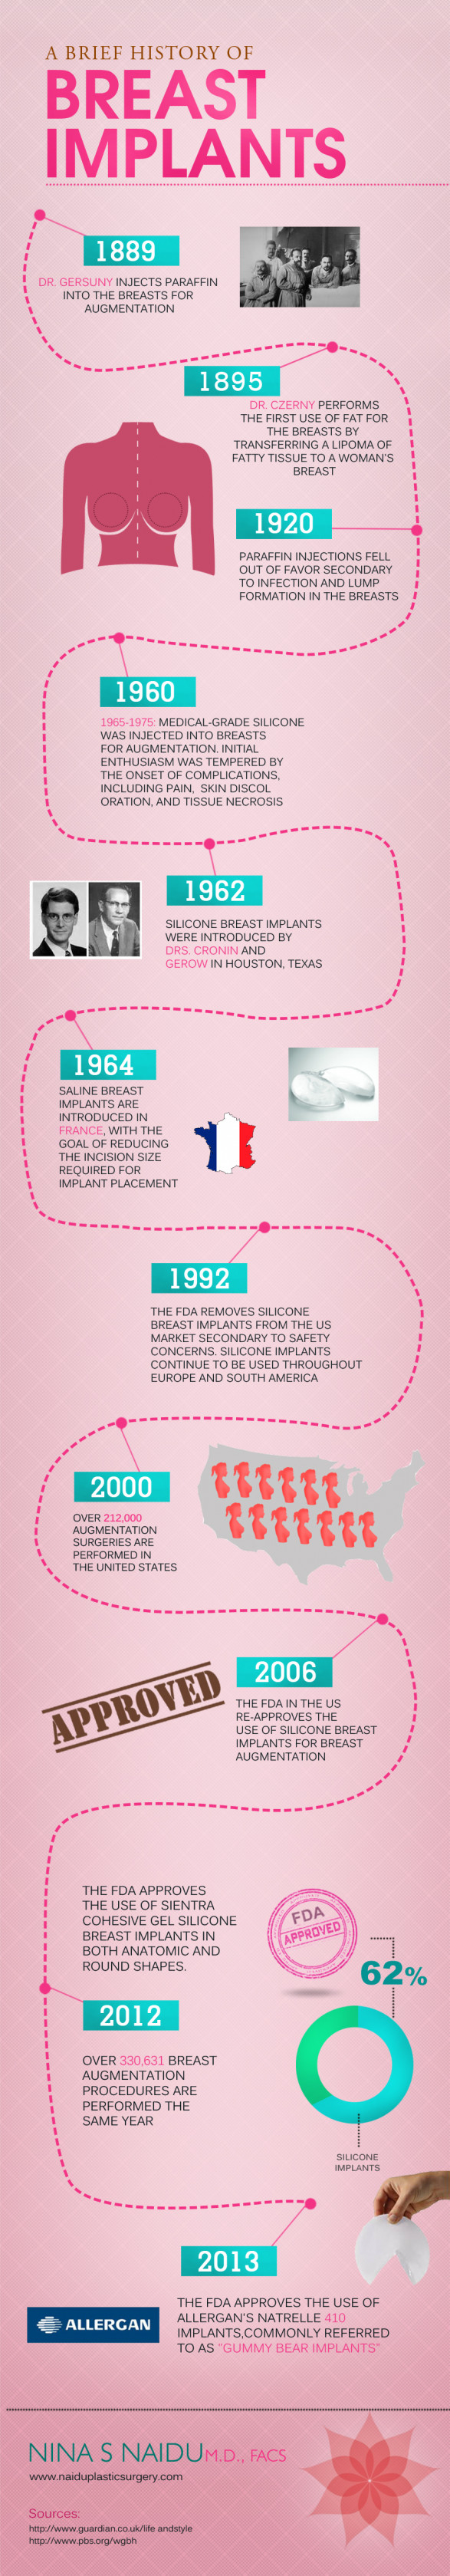 A Brief History of Breast Implants